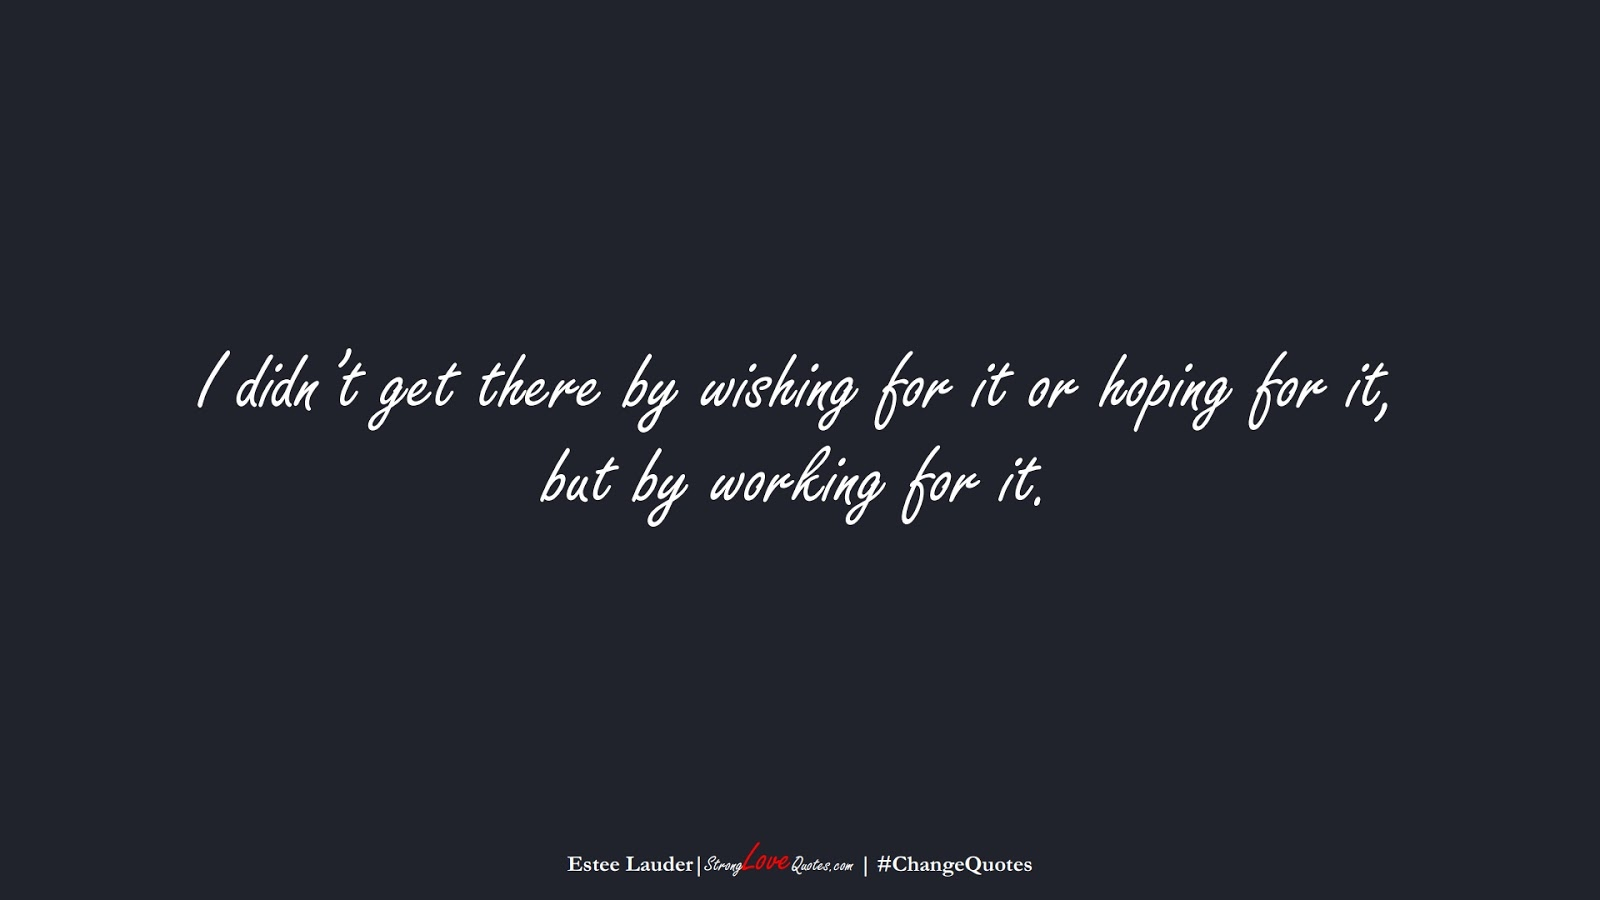 I didn't get there by wishing for it or hoping for it, but by working for it. (Estee Lauder);  #ChangeQuotes